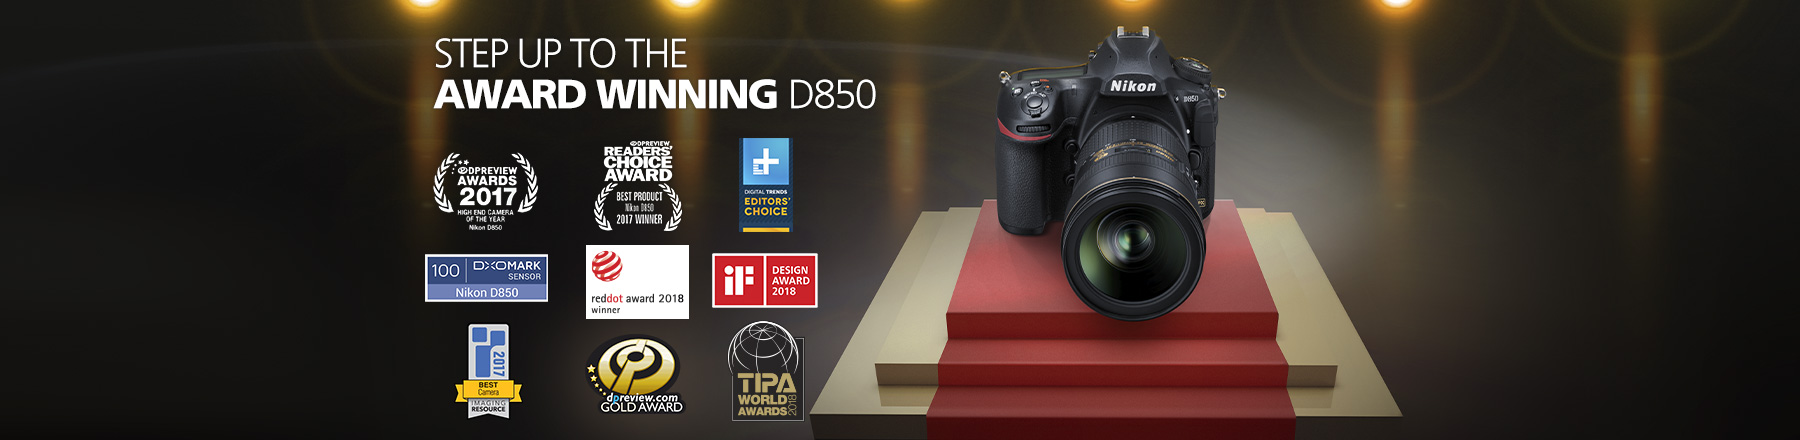 Nikons Award Winning D850